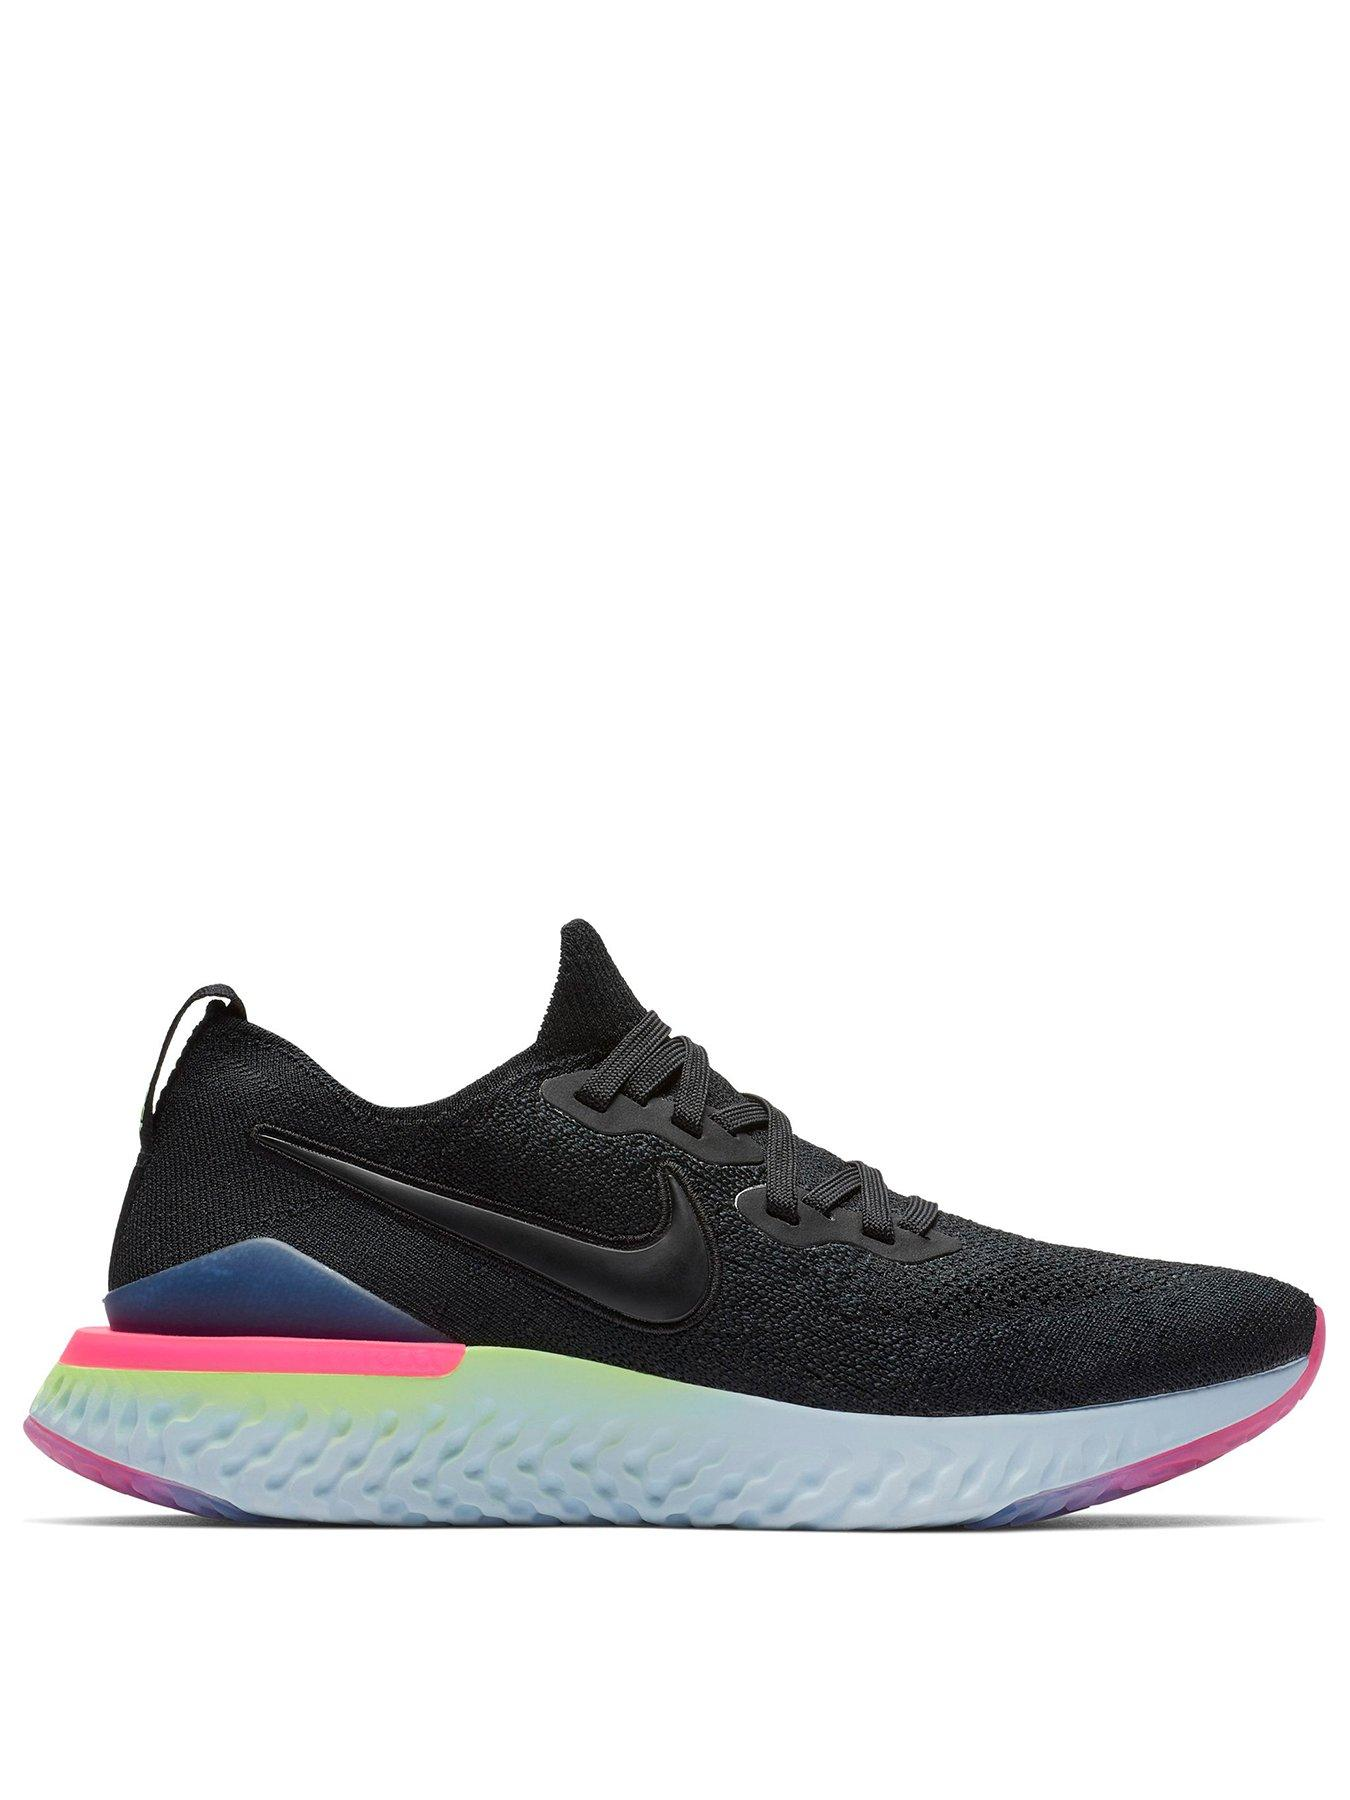 epic react trainers